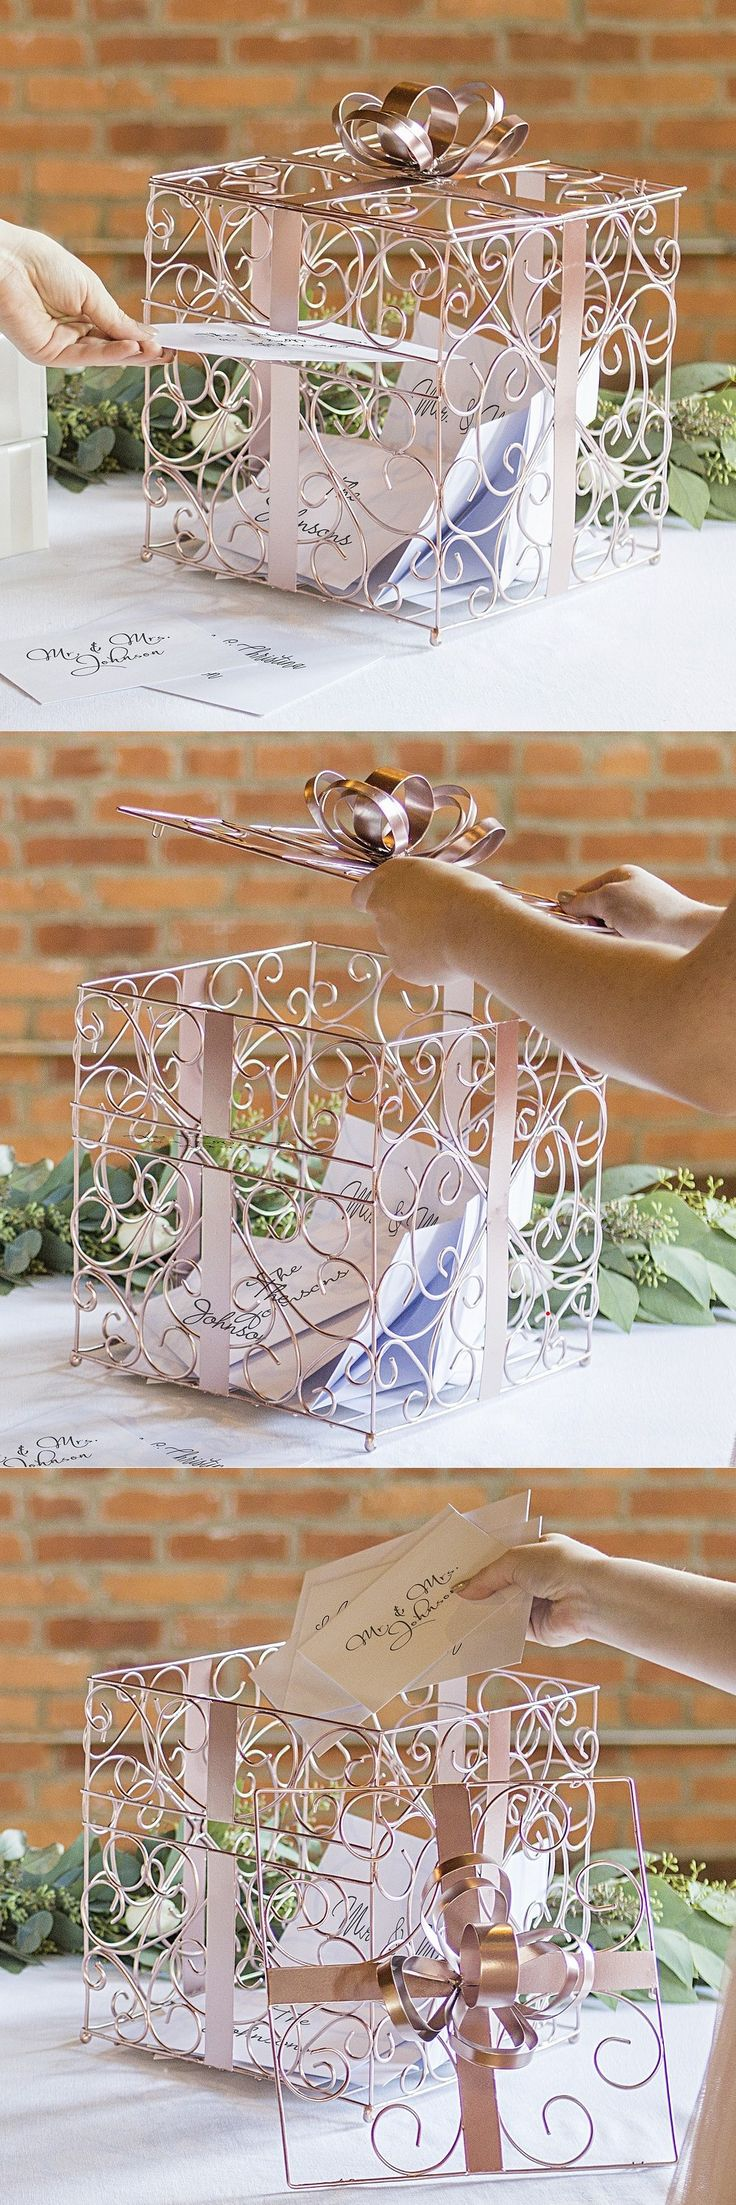 Wedding Gift Card Box Idea - This rose gold scrolled metal wire gift card box looks like a wrapped gift complete with bow on top. The newlyweds can use it to decorate their home after the wedding.